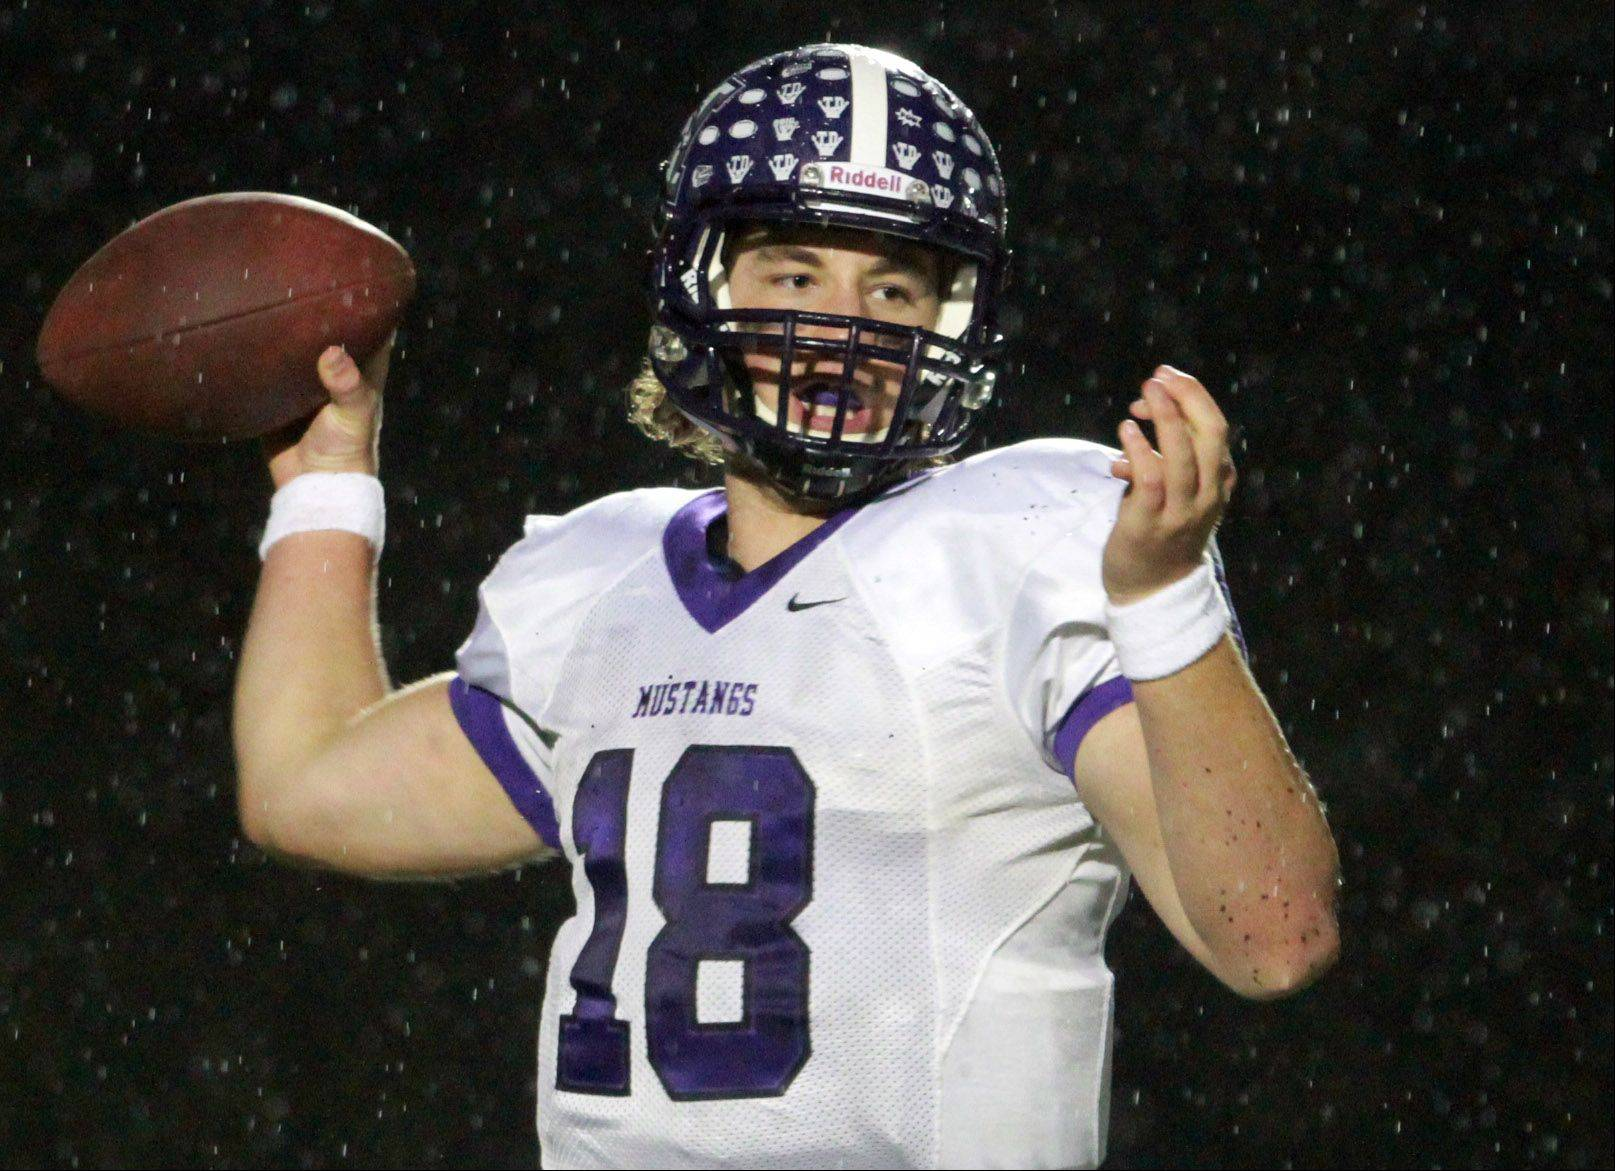 Rolling Meadows quarterback Bobby Suchecki throws the ball gainst Grayslake North in a Class 6A playoff opener at Grayslake North on Friday.